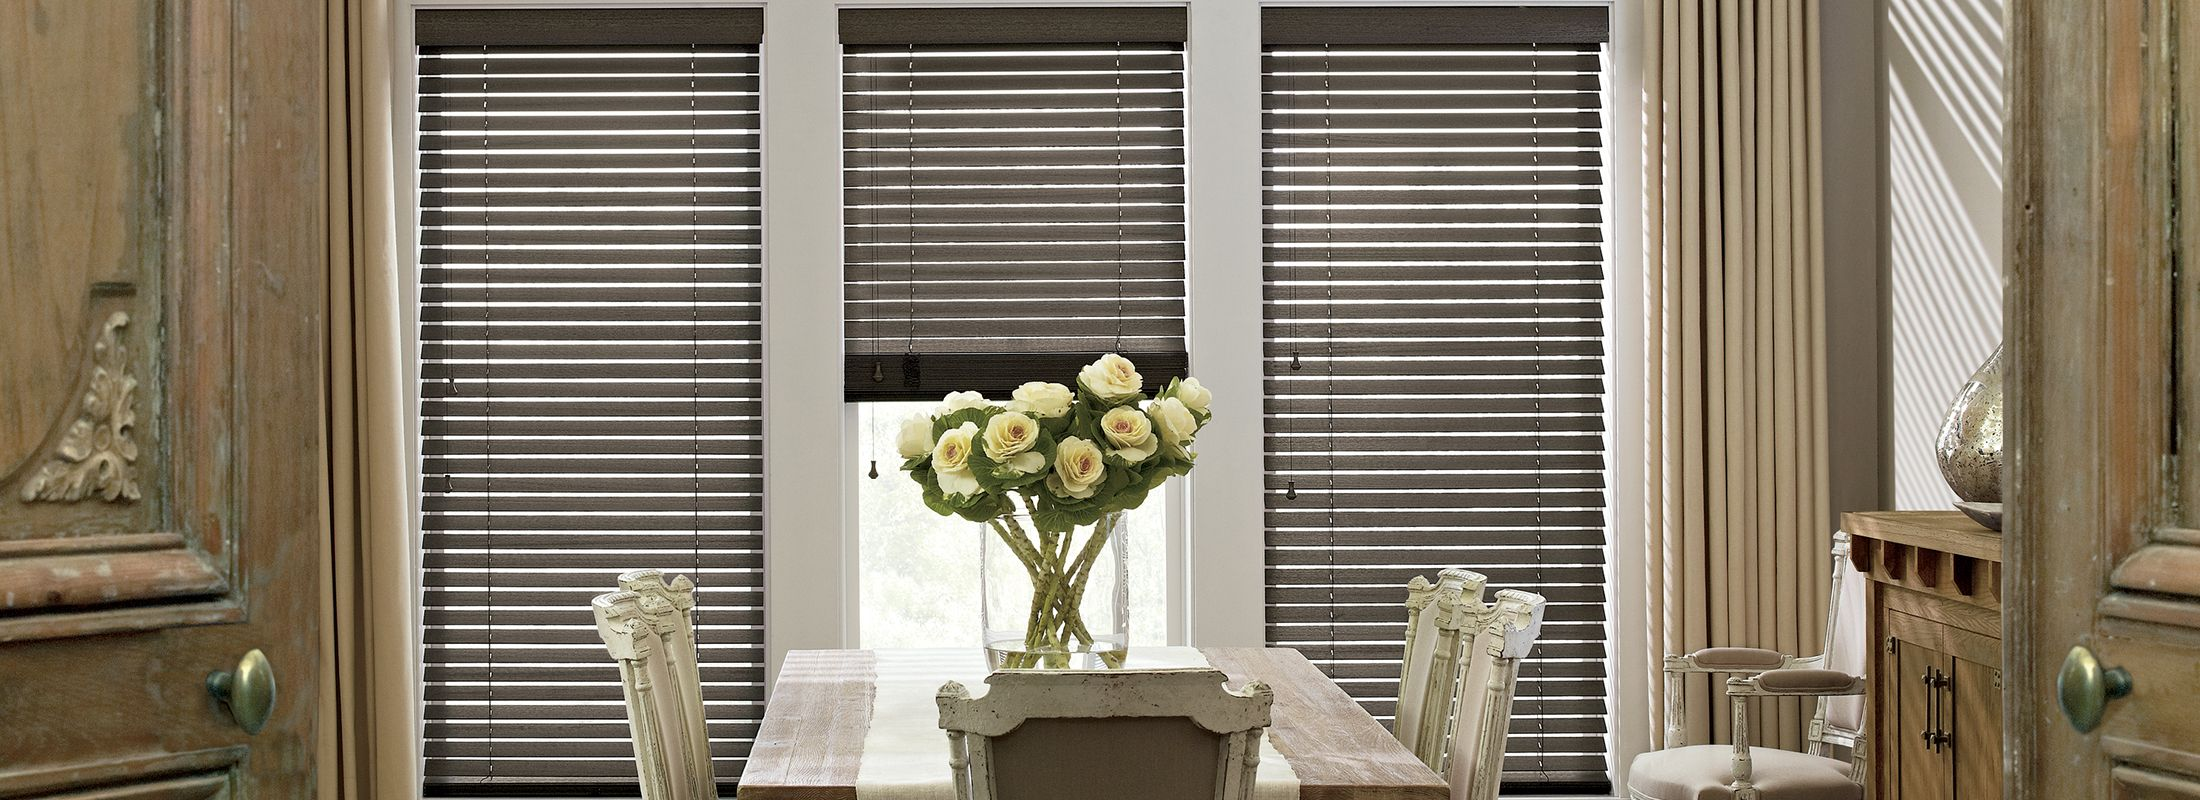 Wooden blinds in Wirebrushed Basswood Chalkboard - Parkland